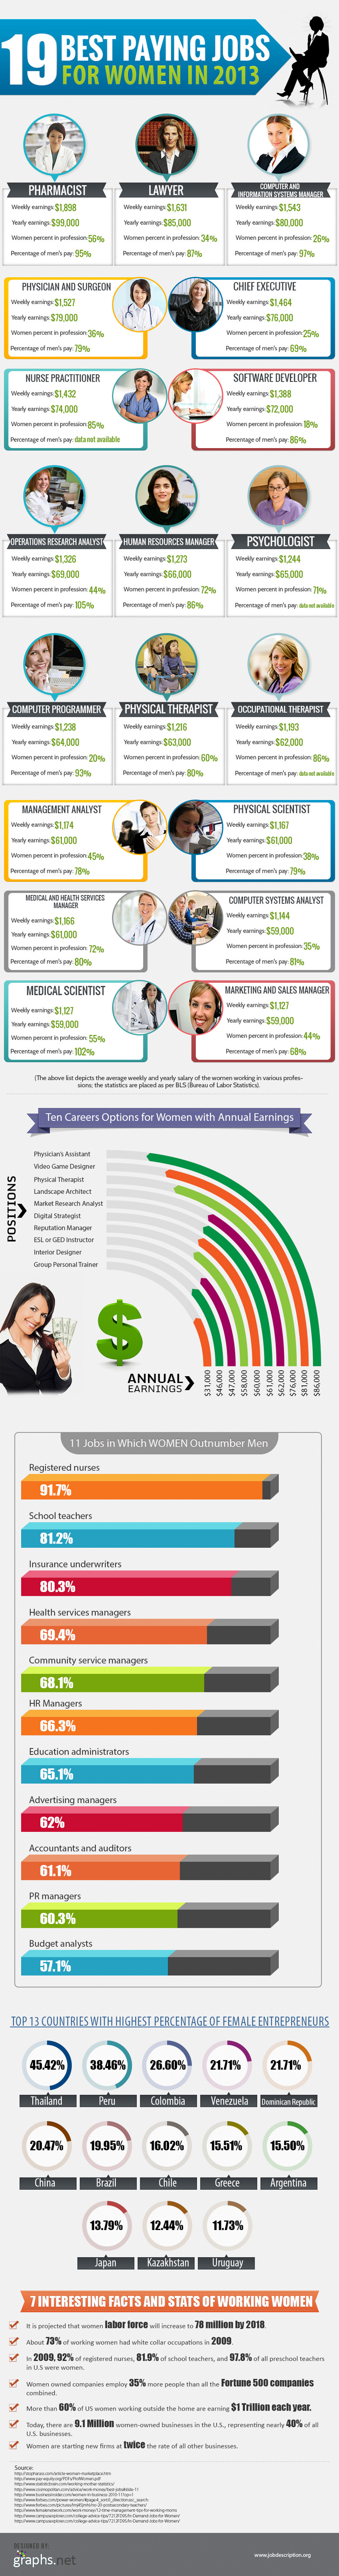 Top Paying Jobs for Women